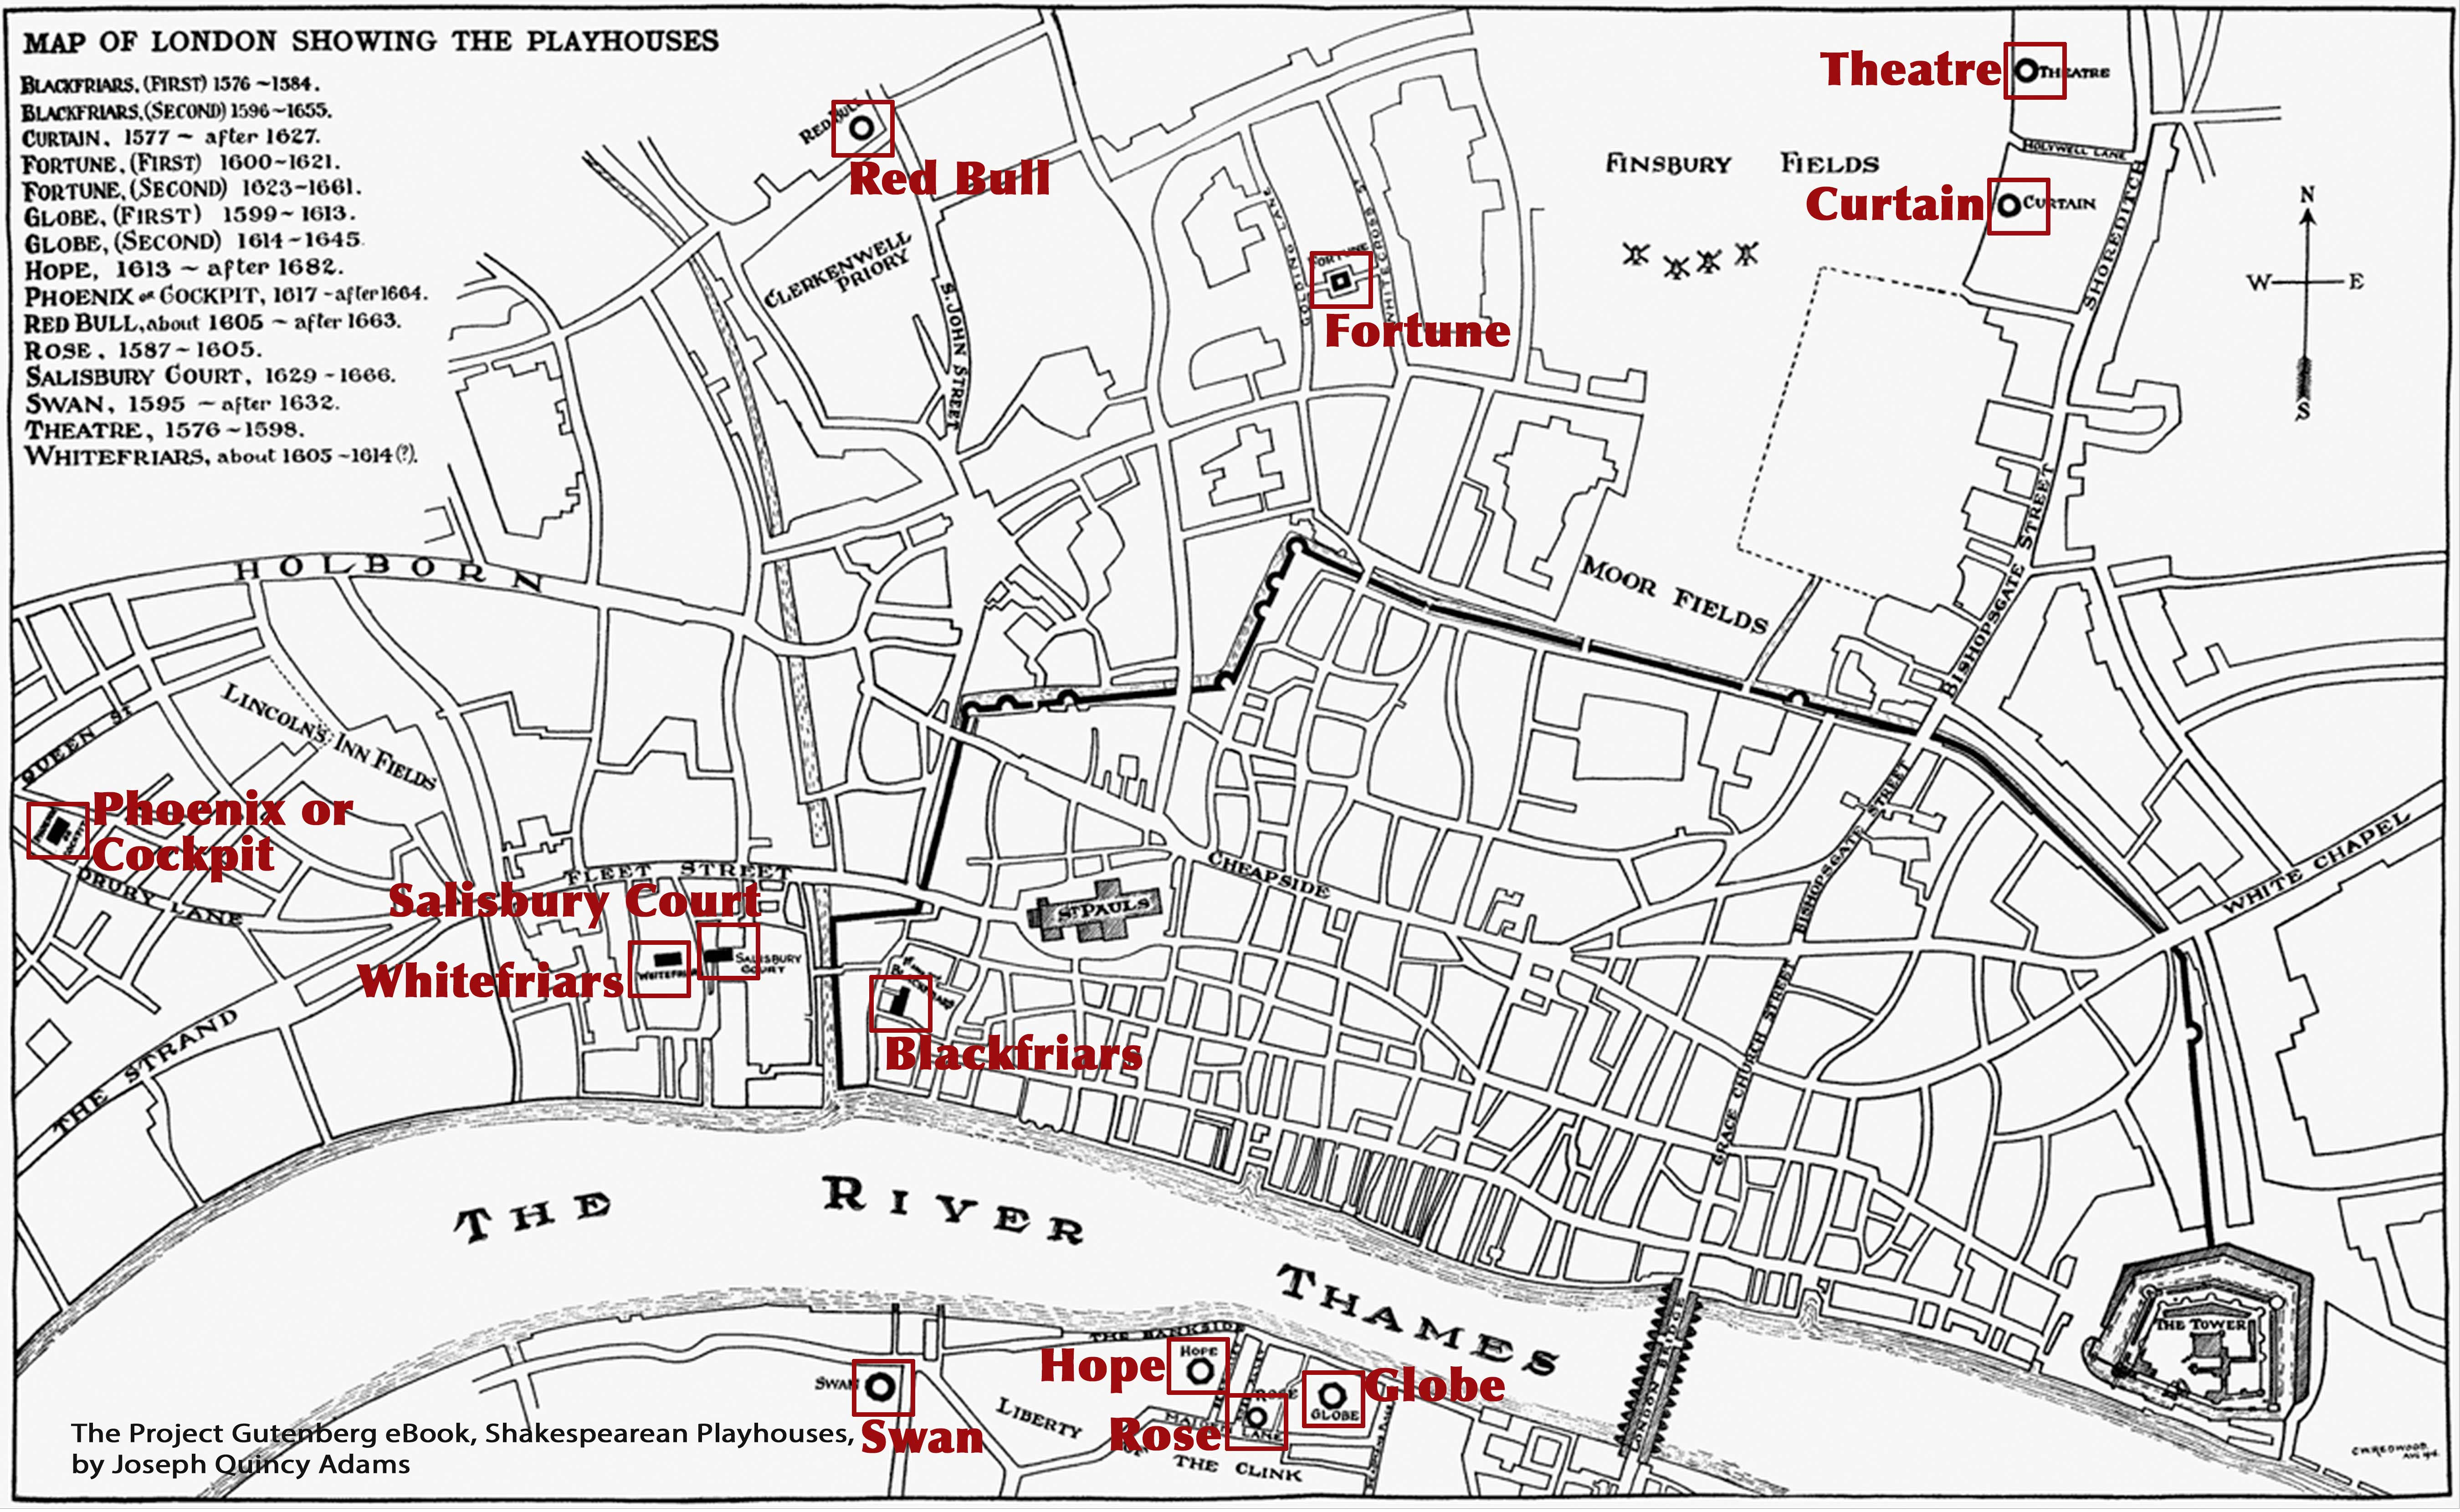 Map Of London 1600.Theaters Of London 1567 1642 Myshakespeare Me